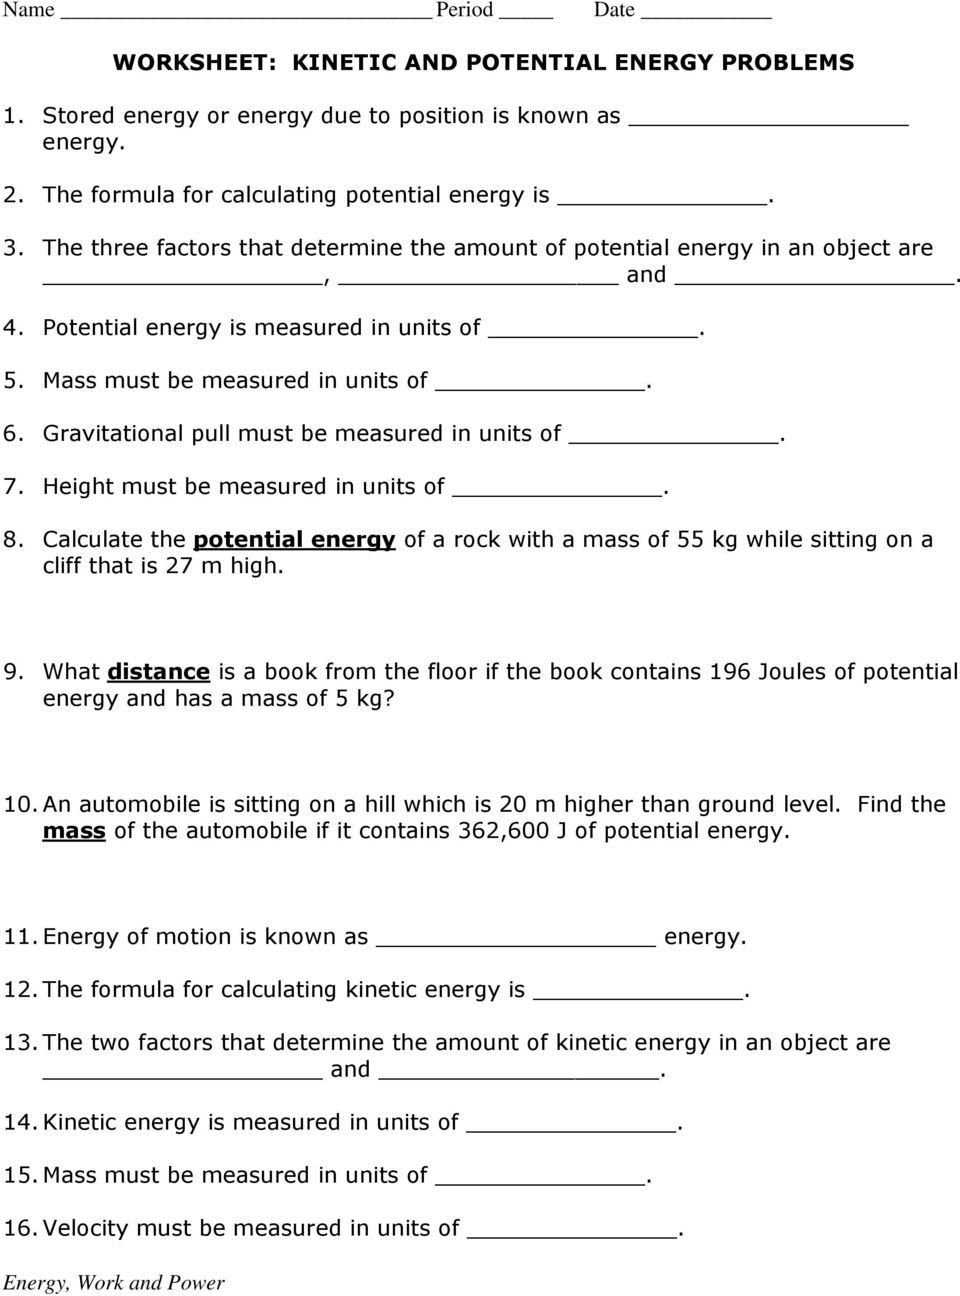 Name Period WORKSHEET: KINETIC AND POTENTIAL ENERGY PROBLEMS  1